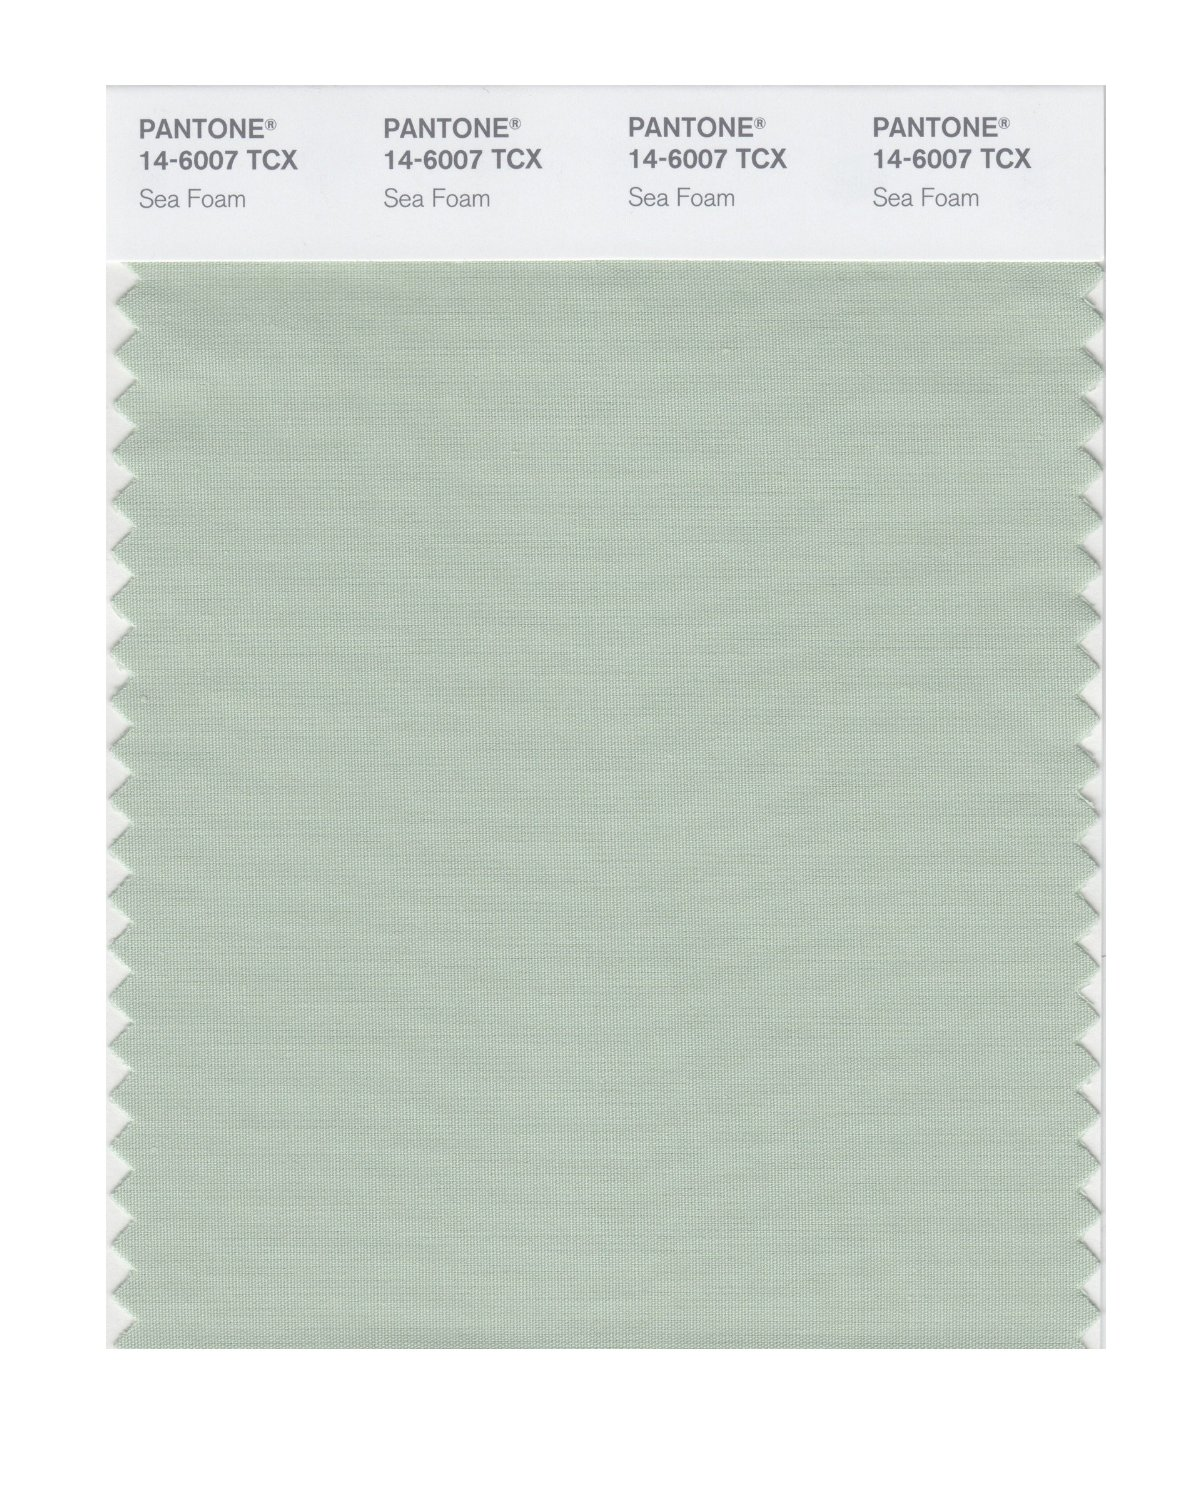 Pantone Smart Swatch 14-6007 Sea Foam